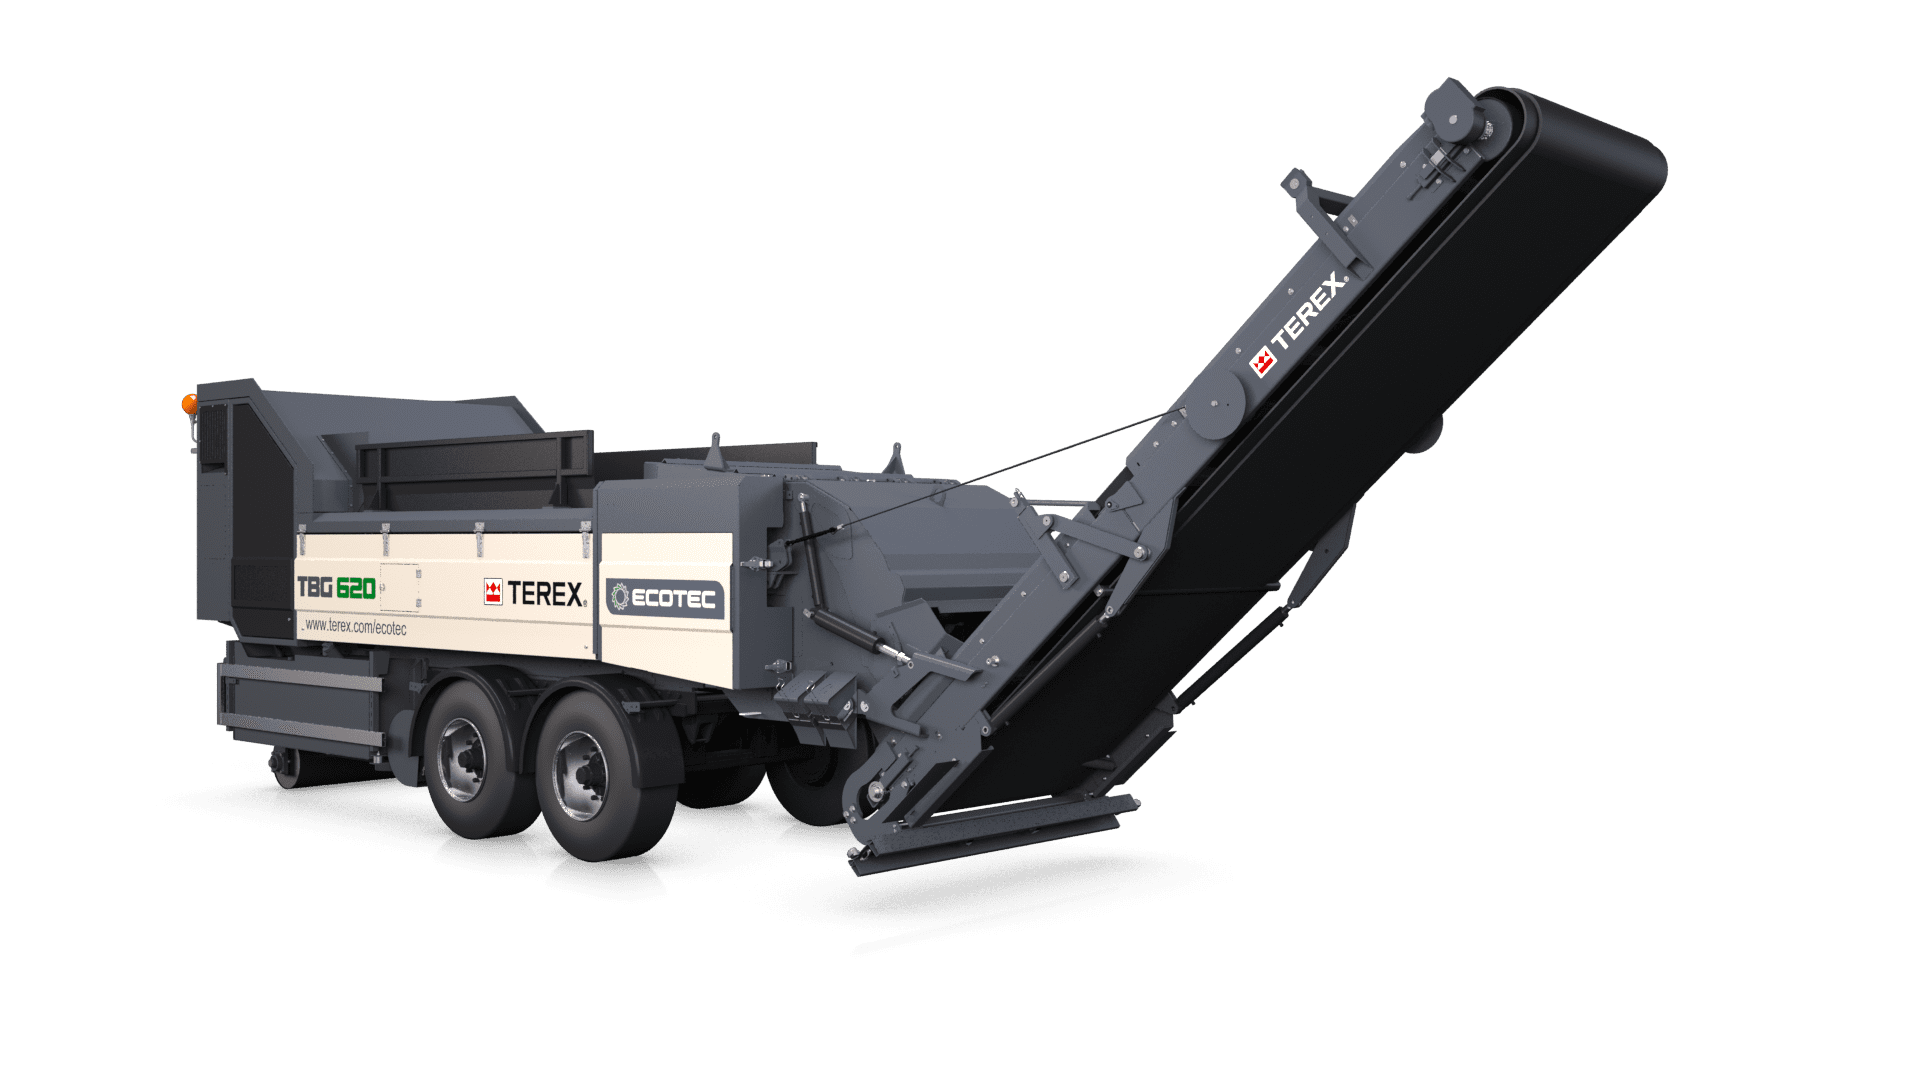 Ecotec TBG 620 high speed shredder